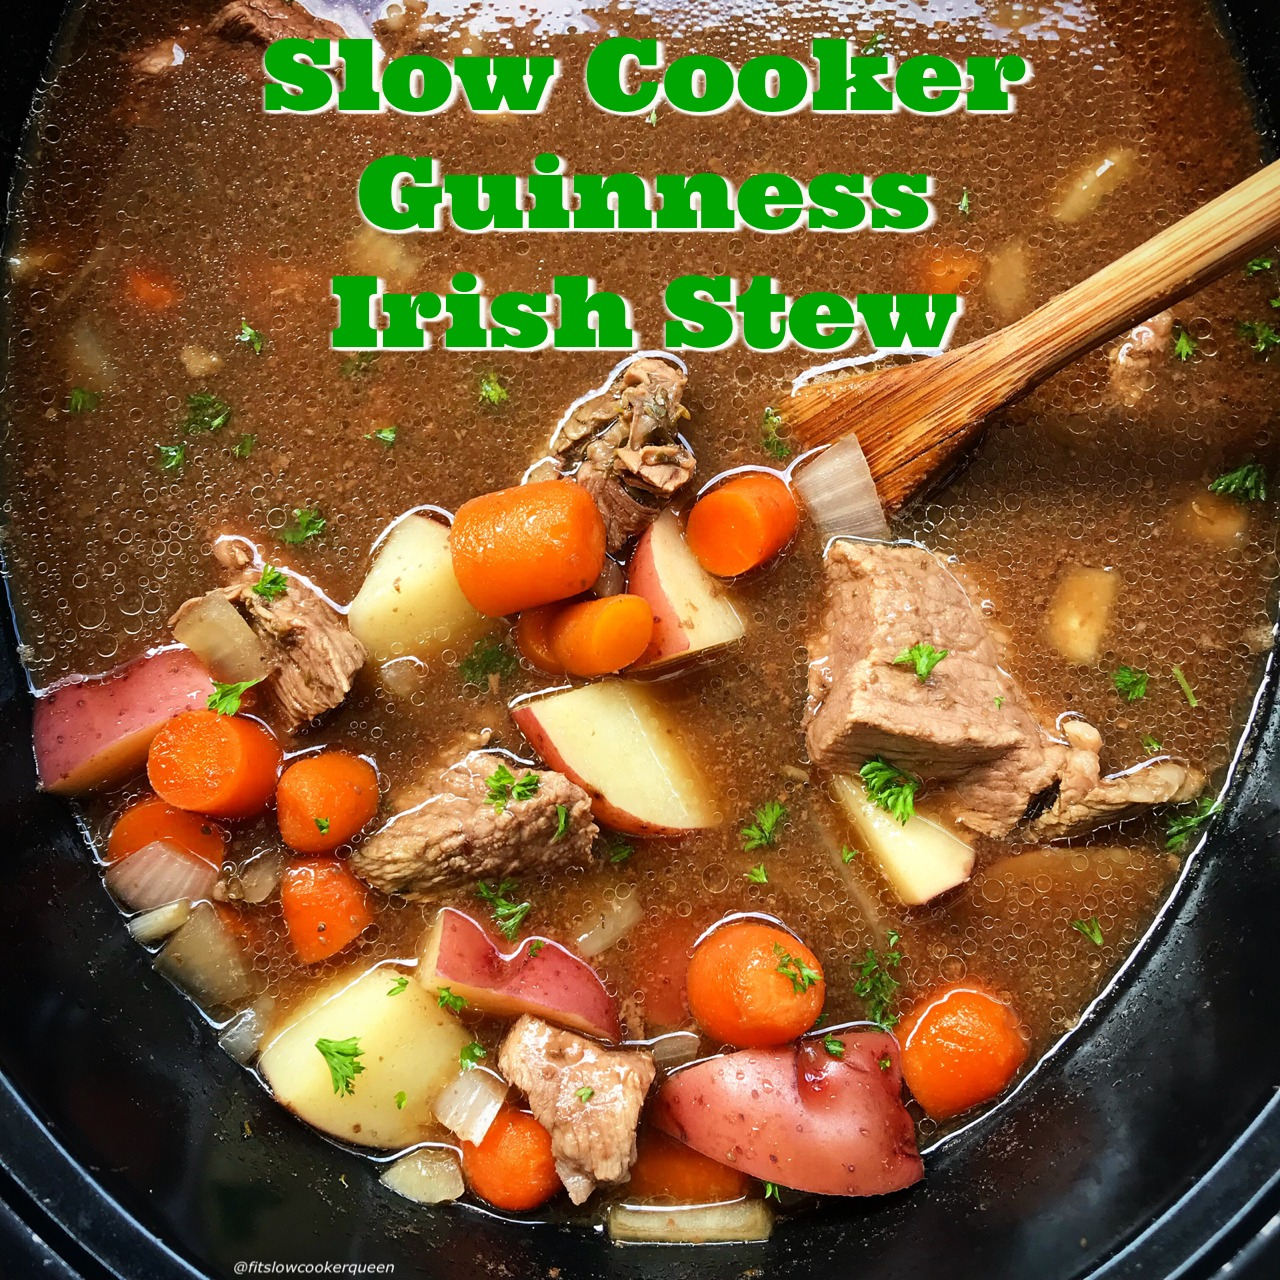 Guinness is the perfect addition to this hearty Irish stew. Using lamb or beef, this slow cooker recipe is simple comfort food at it's finest.